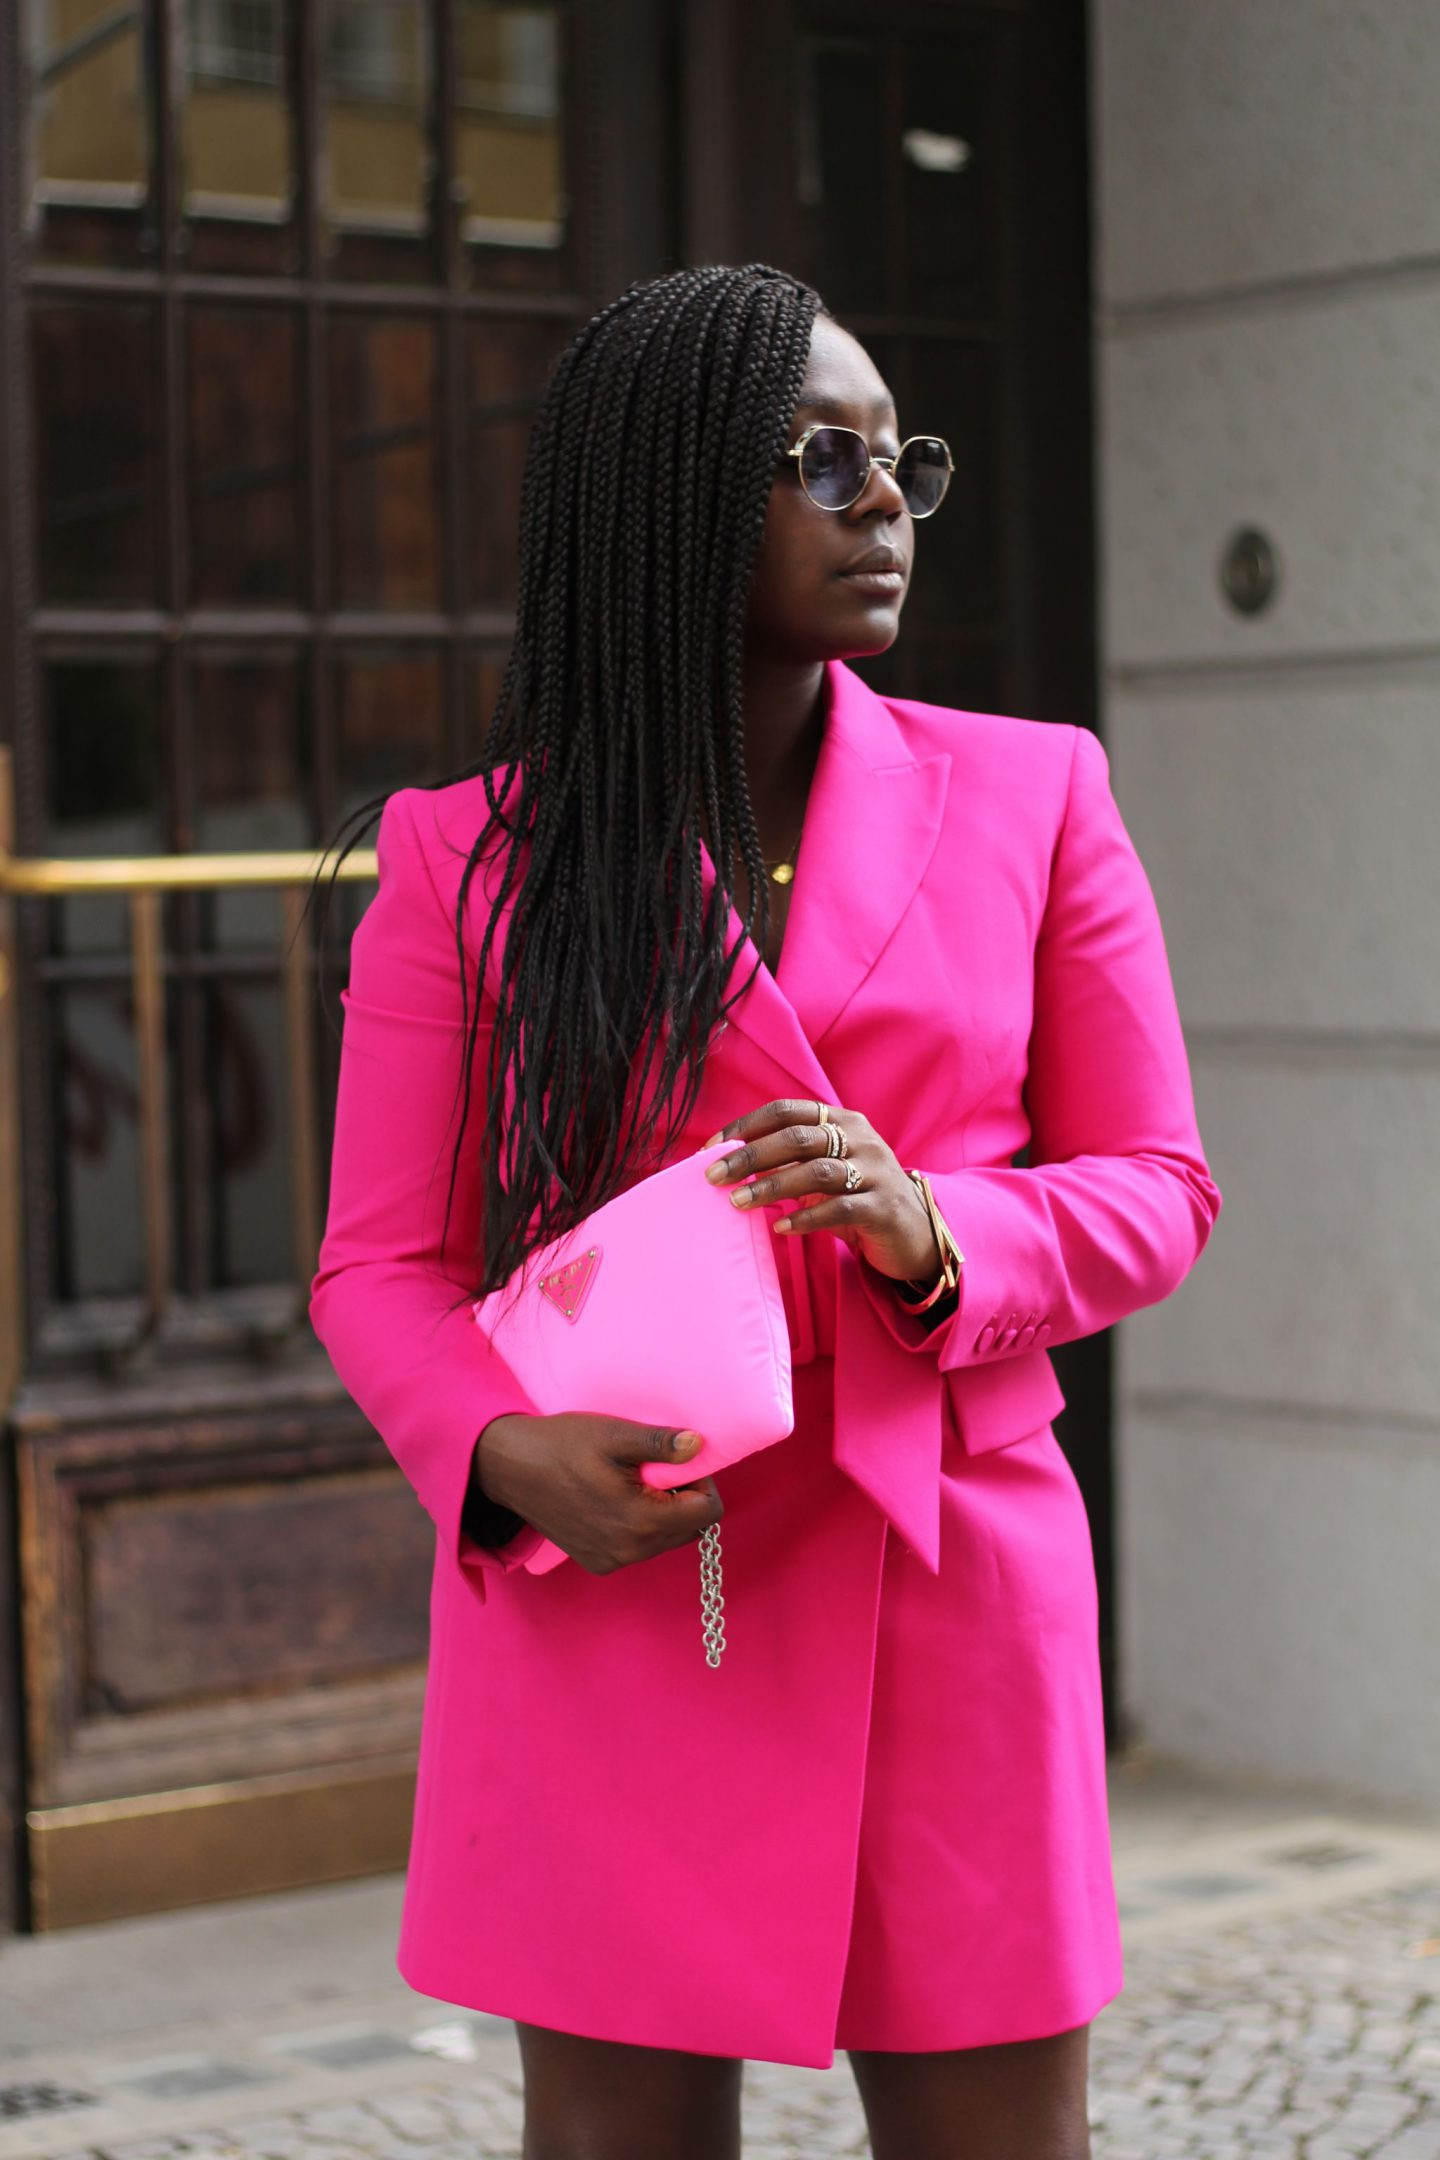 Prada_nylon_bag_Lois_Opoku_fashion_blog_berlin_streetstyle_lisforlois_10